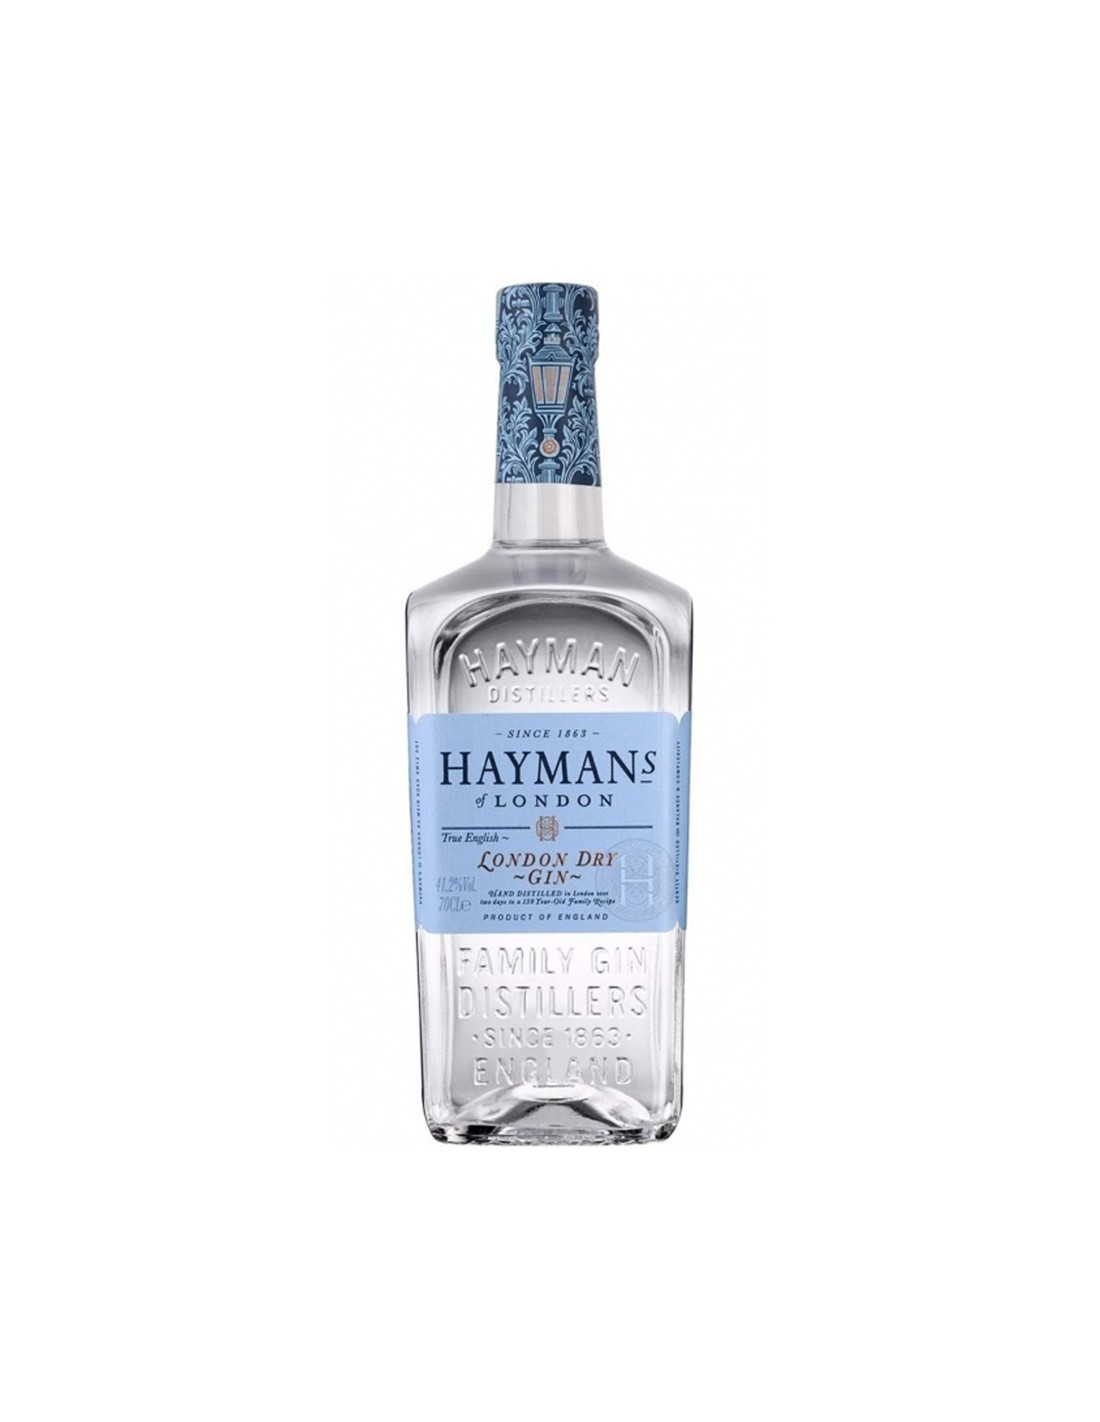 Gin Hayman's London Dry 41.2% alc., 0.7L